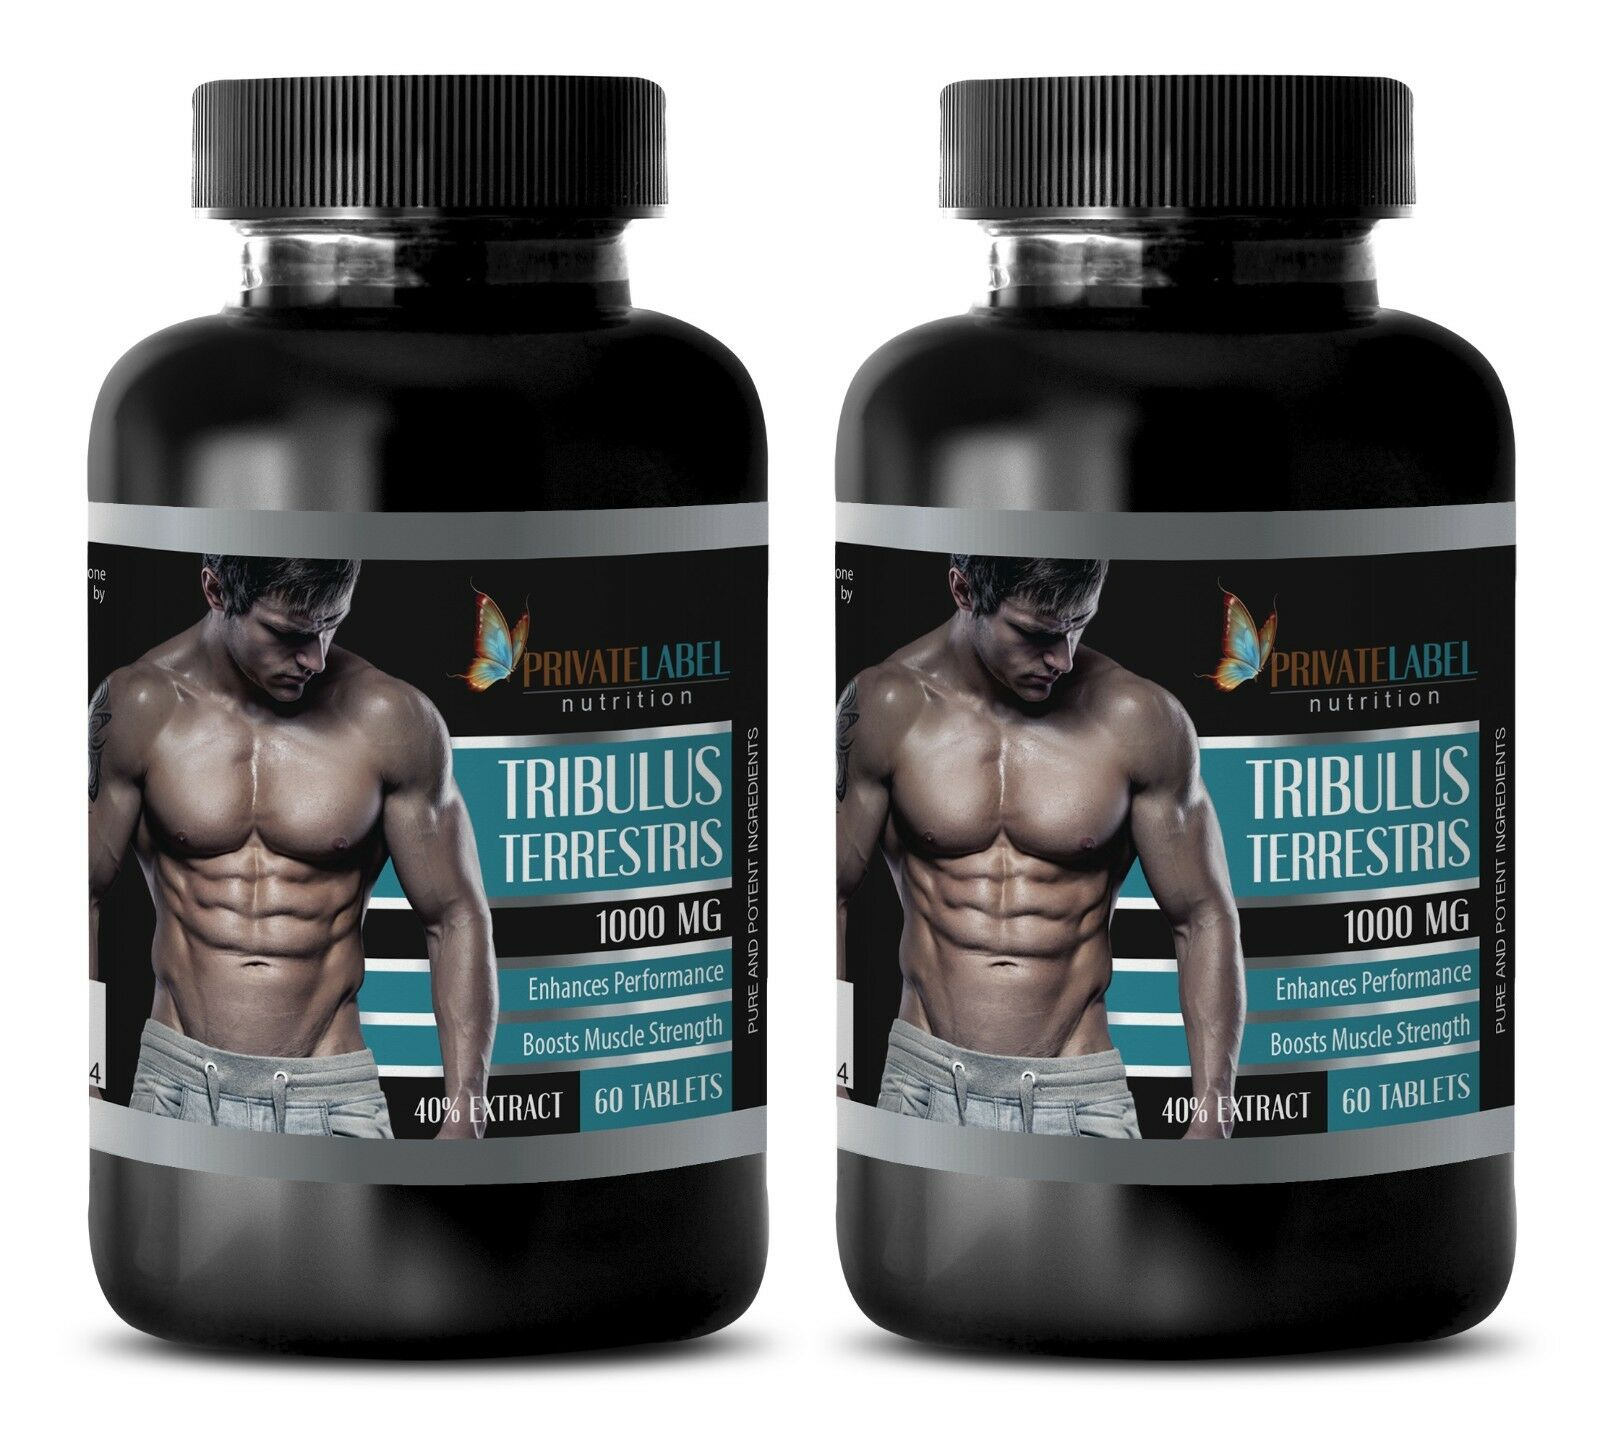 Bulgarian Tribulus Terrestris Extract Muscle Growth Factor 120 Picture 1 Of 6